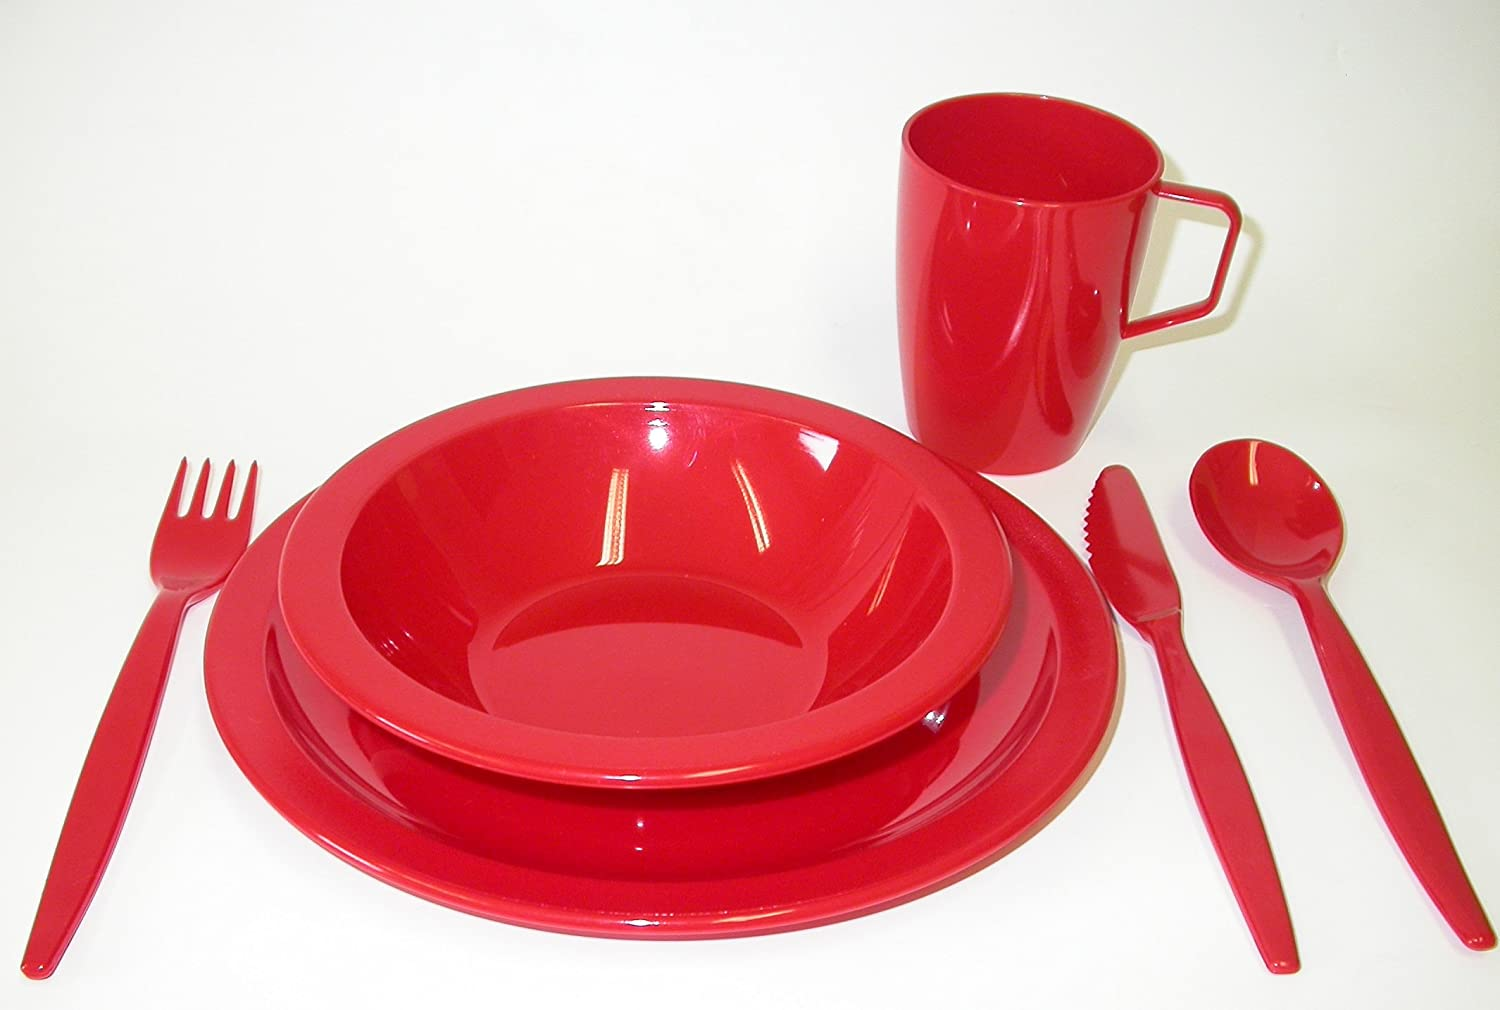 Harfield Polycarbonate Camping Tableware Set - Red by Harfield B0087ZUVSQ